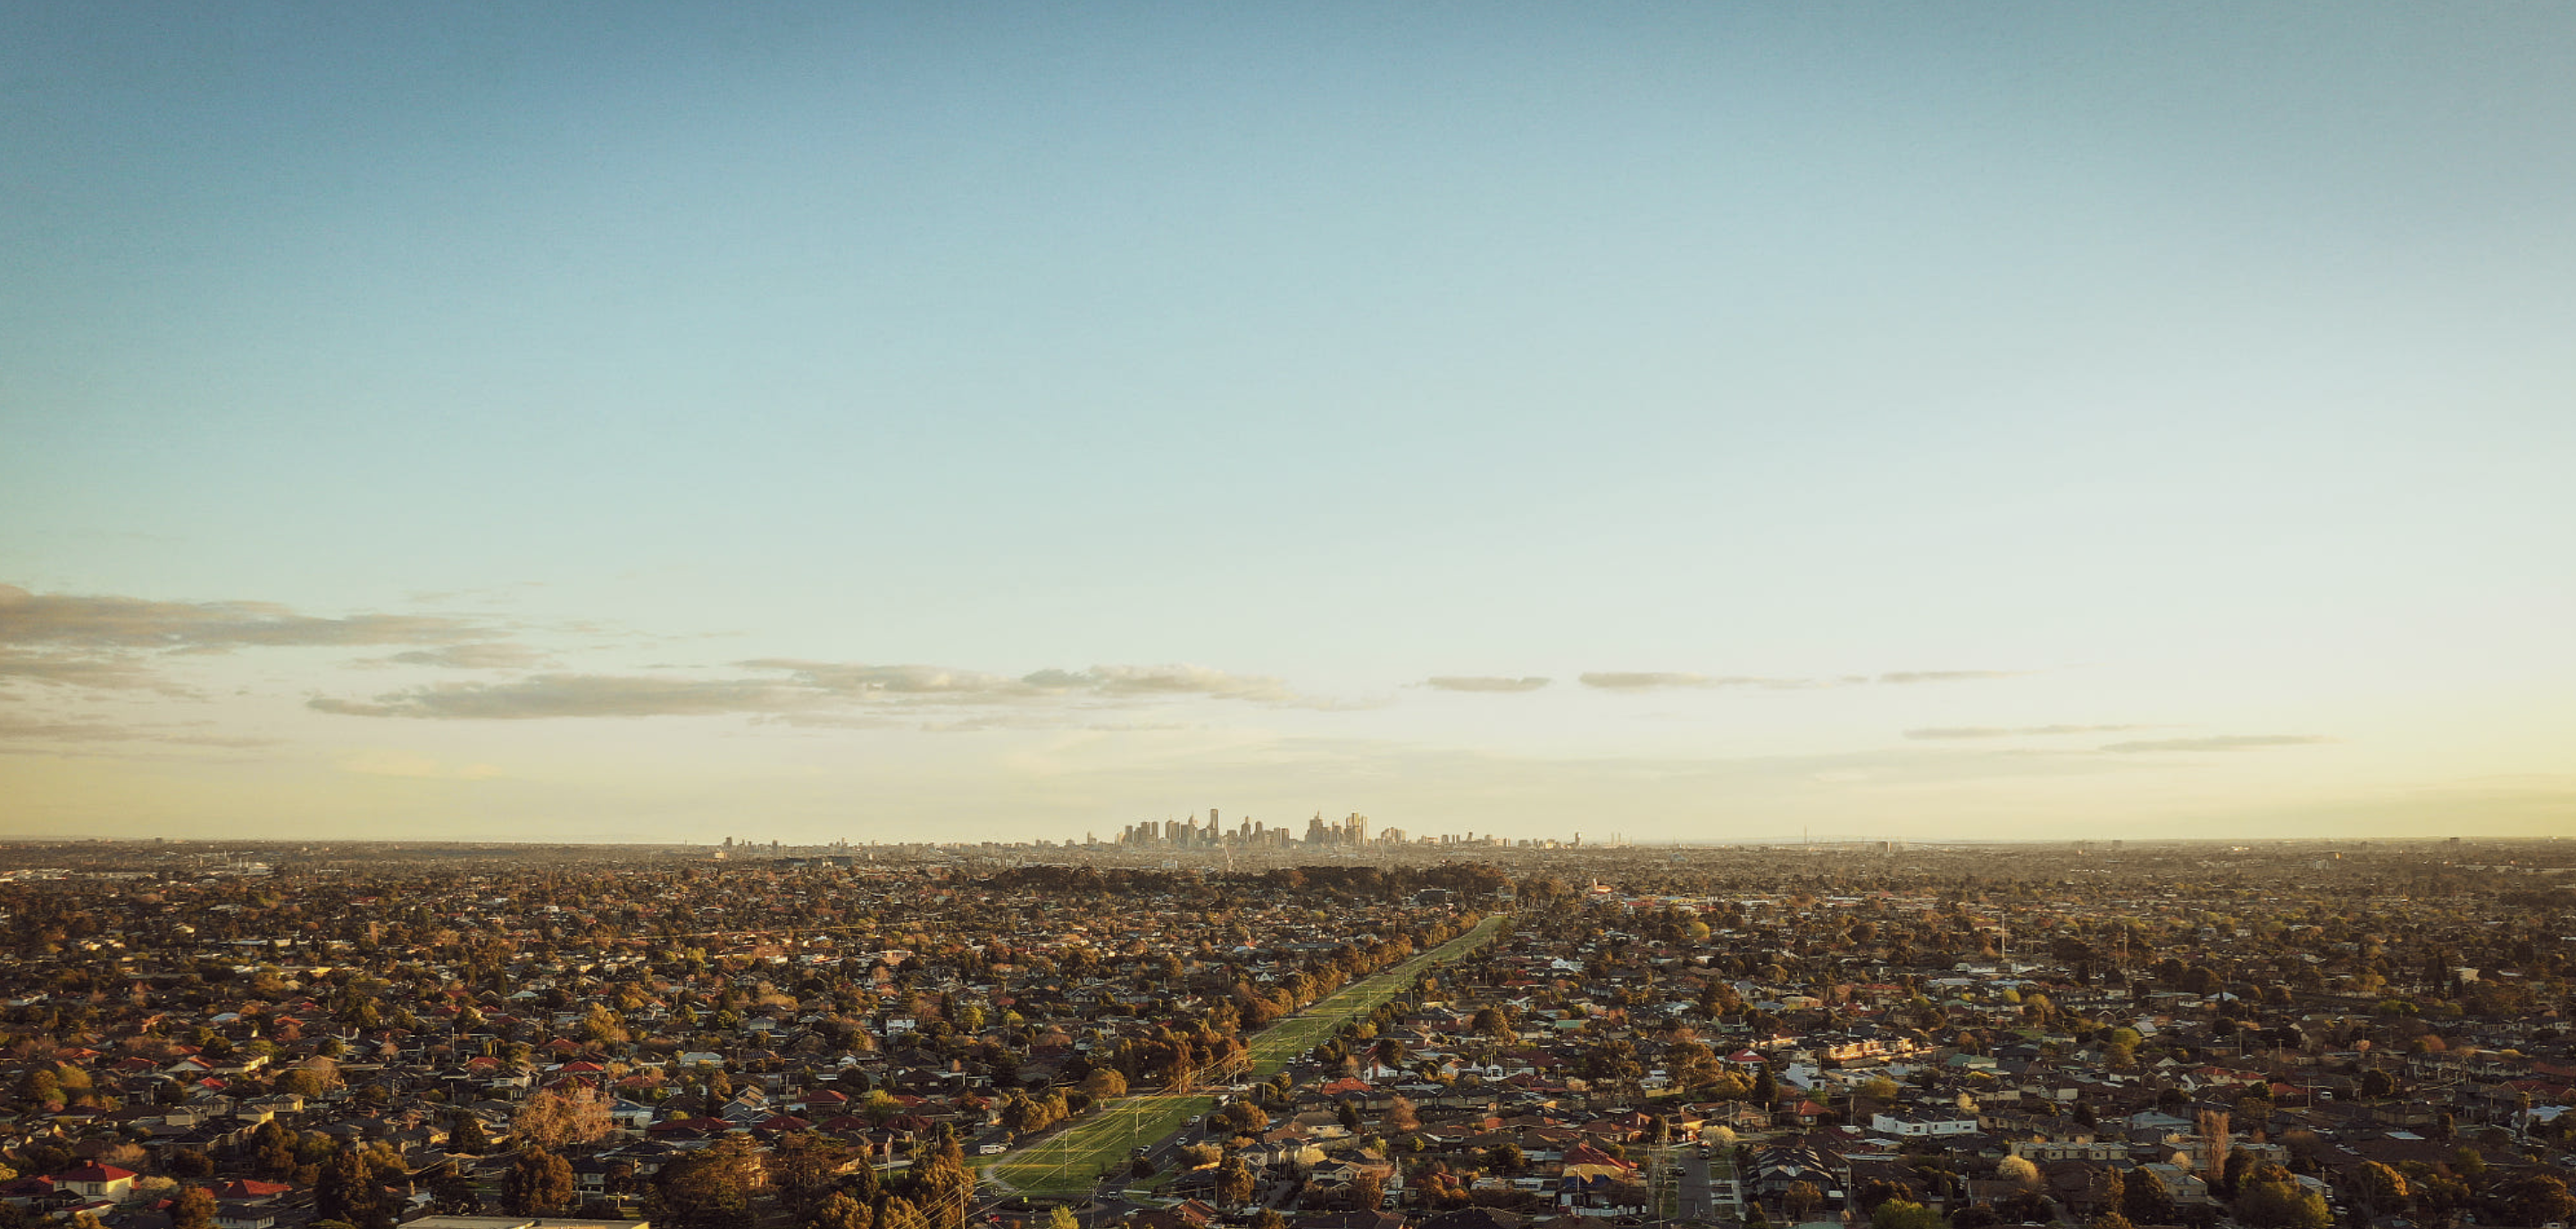 Melbourne CBD - Drone eye view from south eastern suburbs